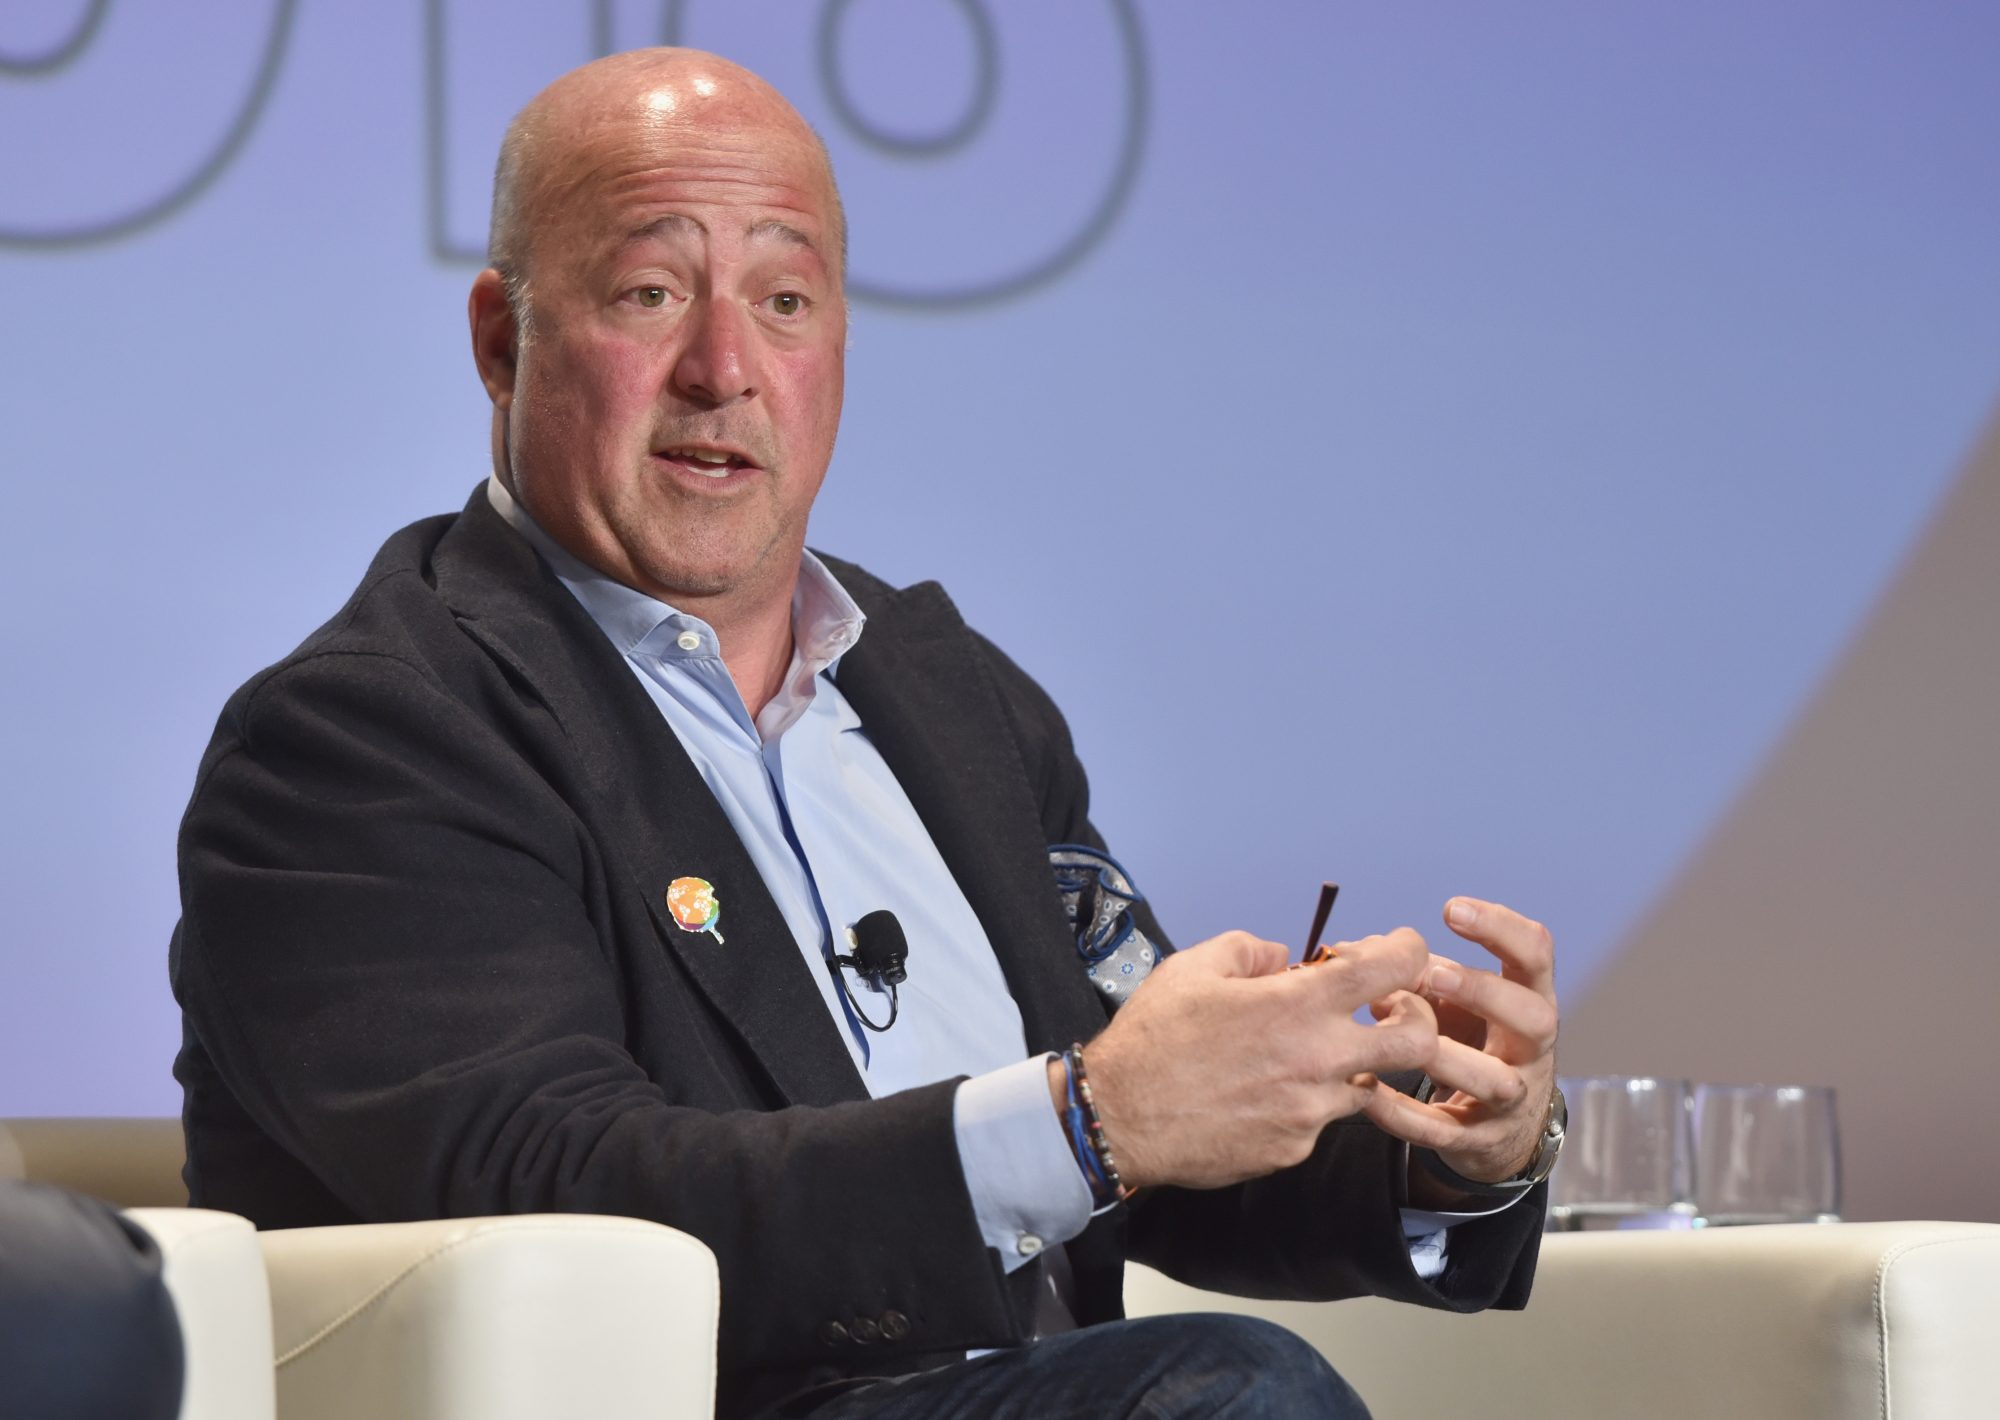 The One Piece of Advice Andrew Zimmern Would Give to Young Chefs